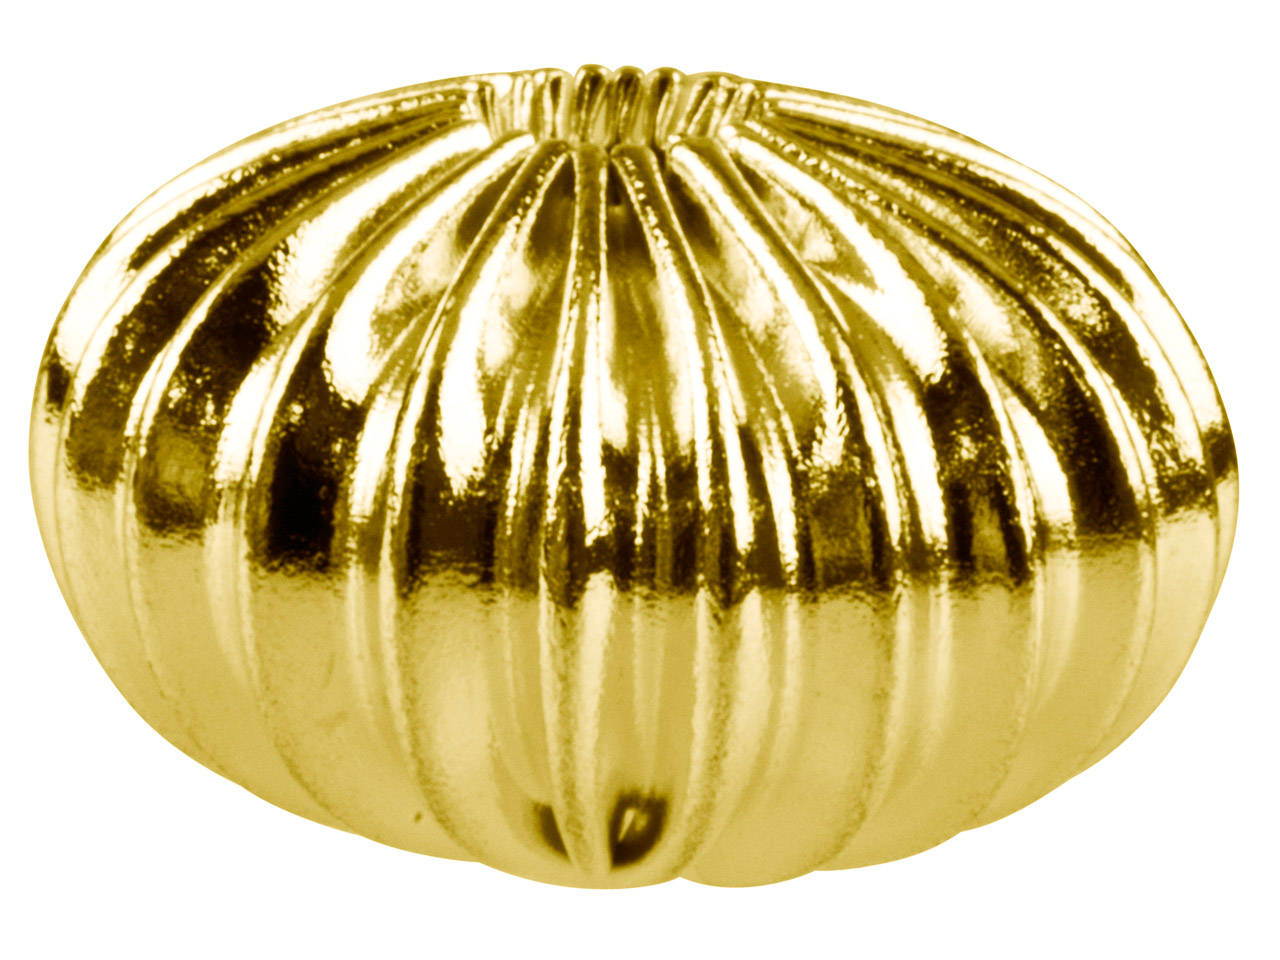 Gold Plated Corrugated Oval Beads  14mm, 2 Hole, 14mm X 9mm,          Pack of 10